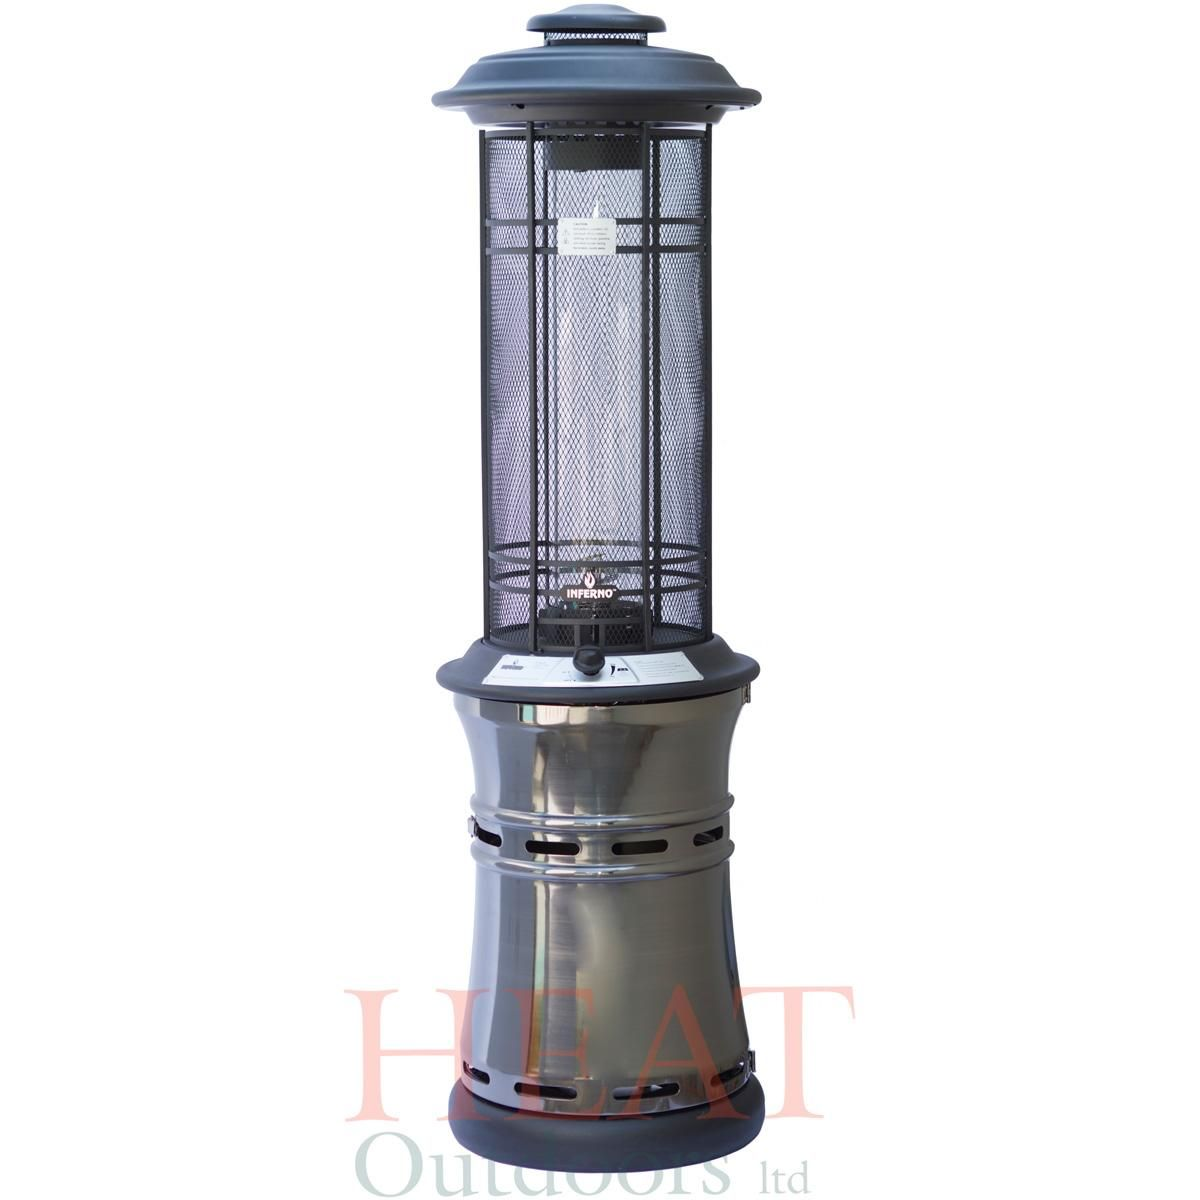 Patio Heaters Santorini Spiral Flame Gas Heater Heat Outdoors